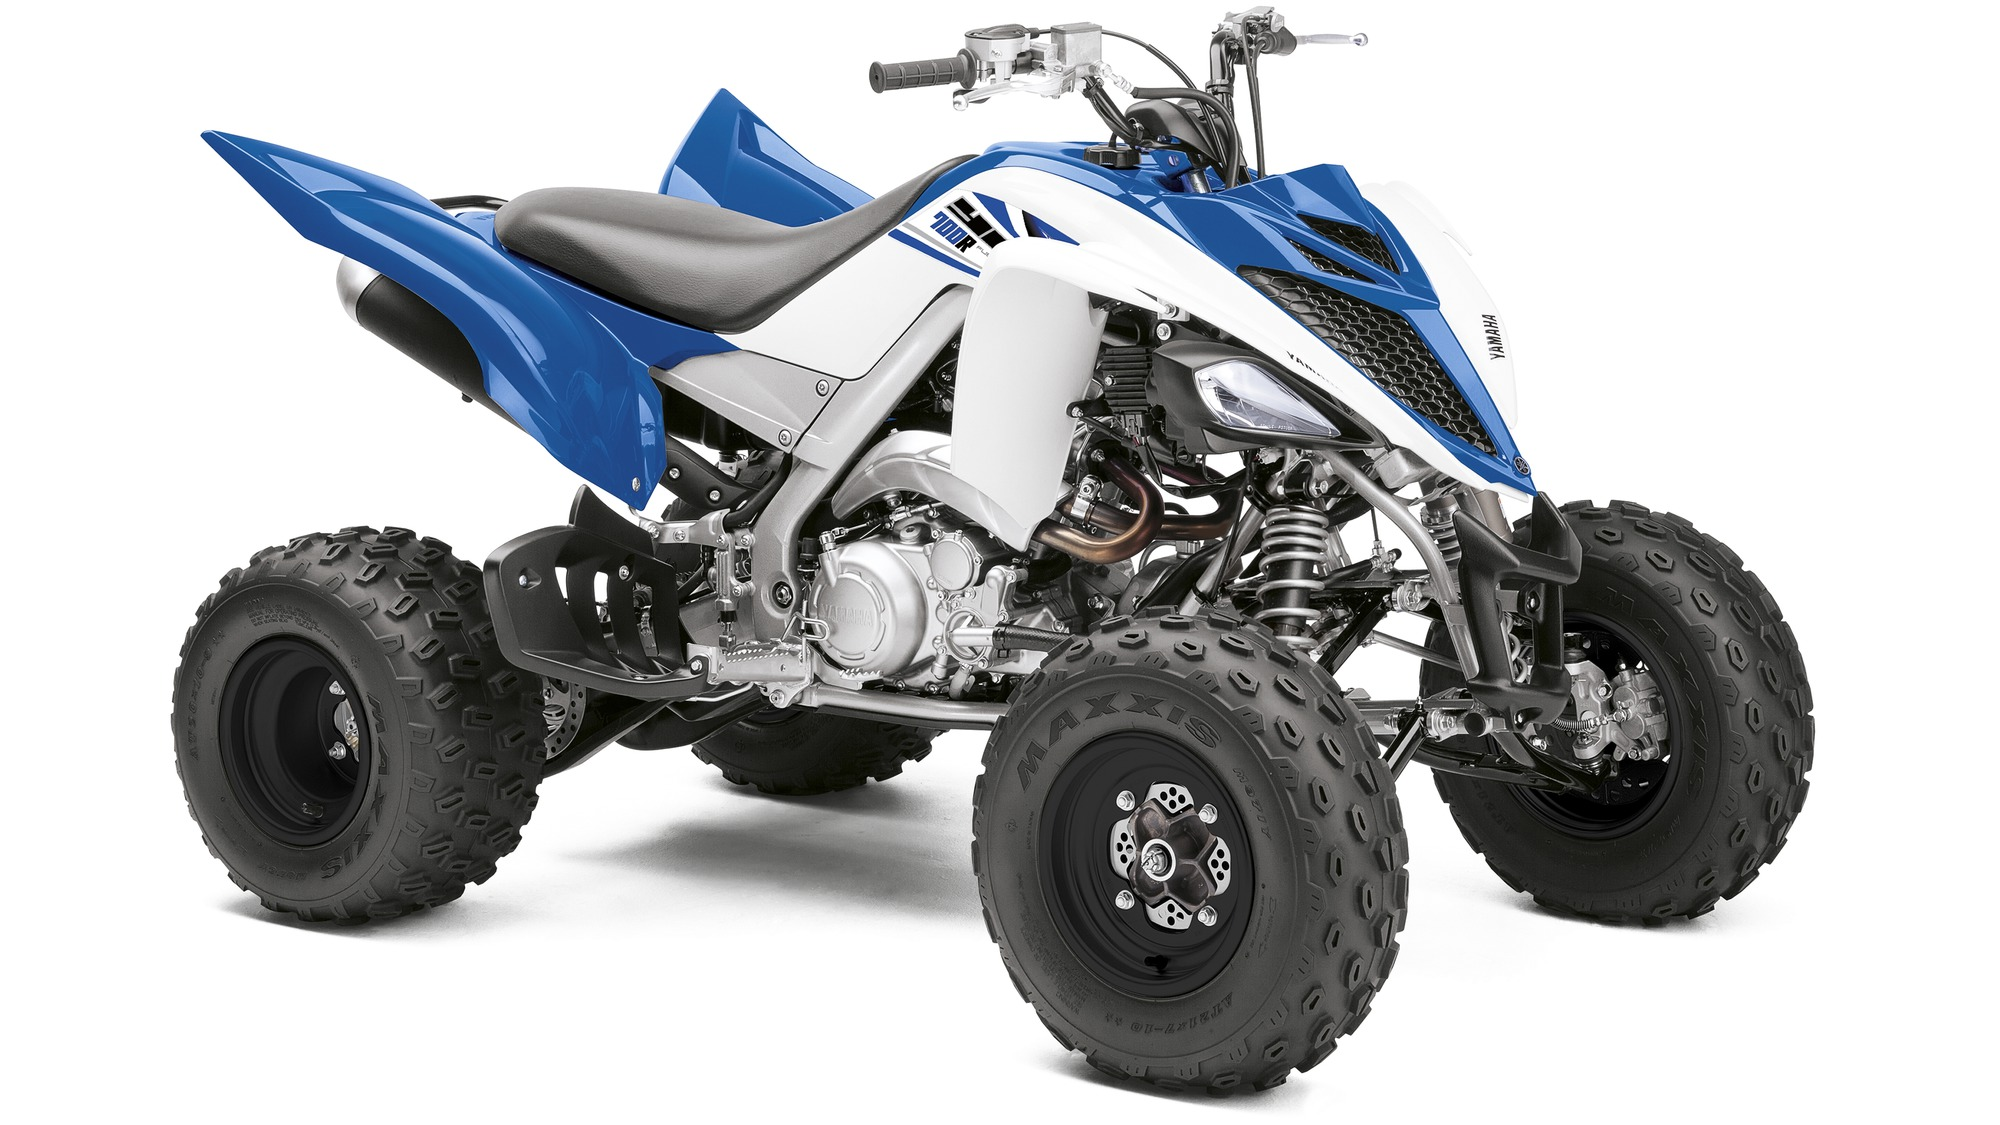 2017 Yamaha ATV Reviews Prices and Specs